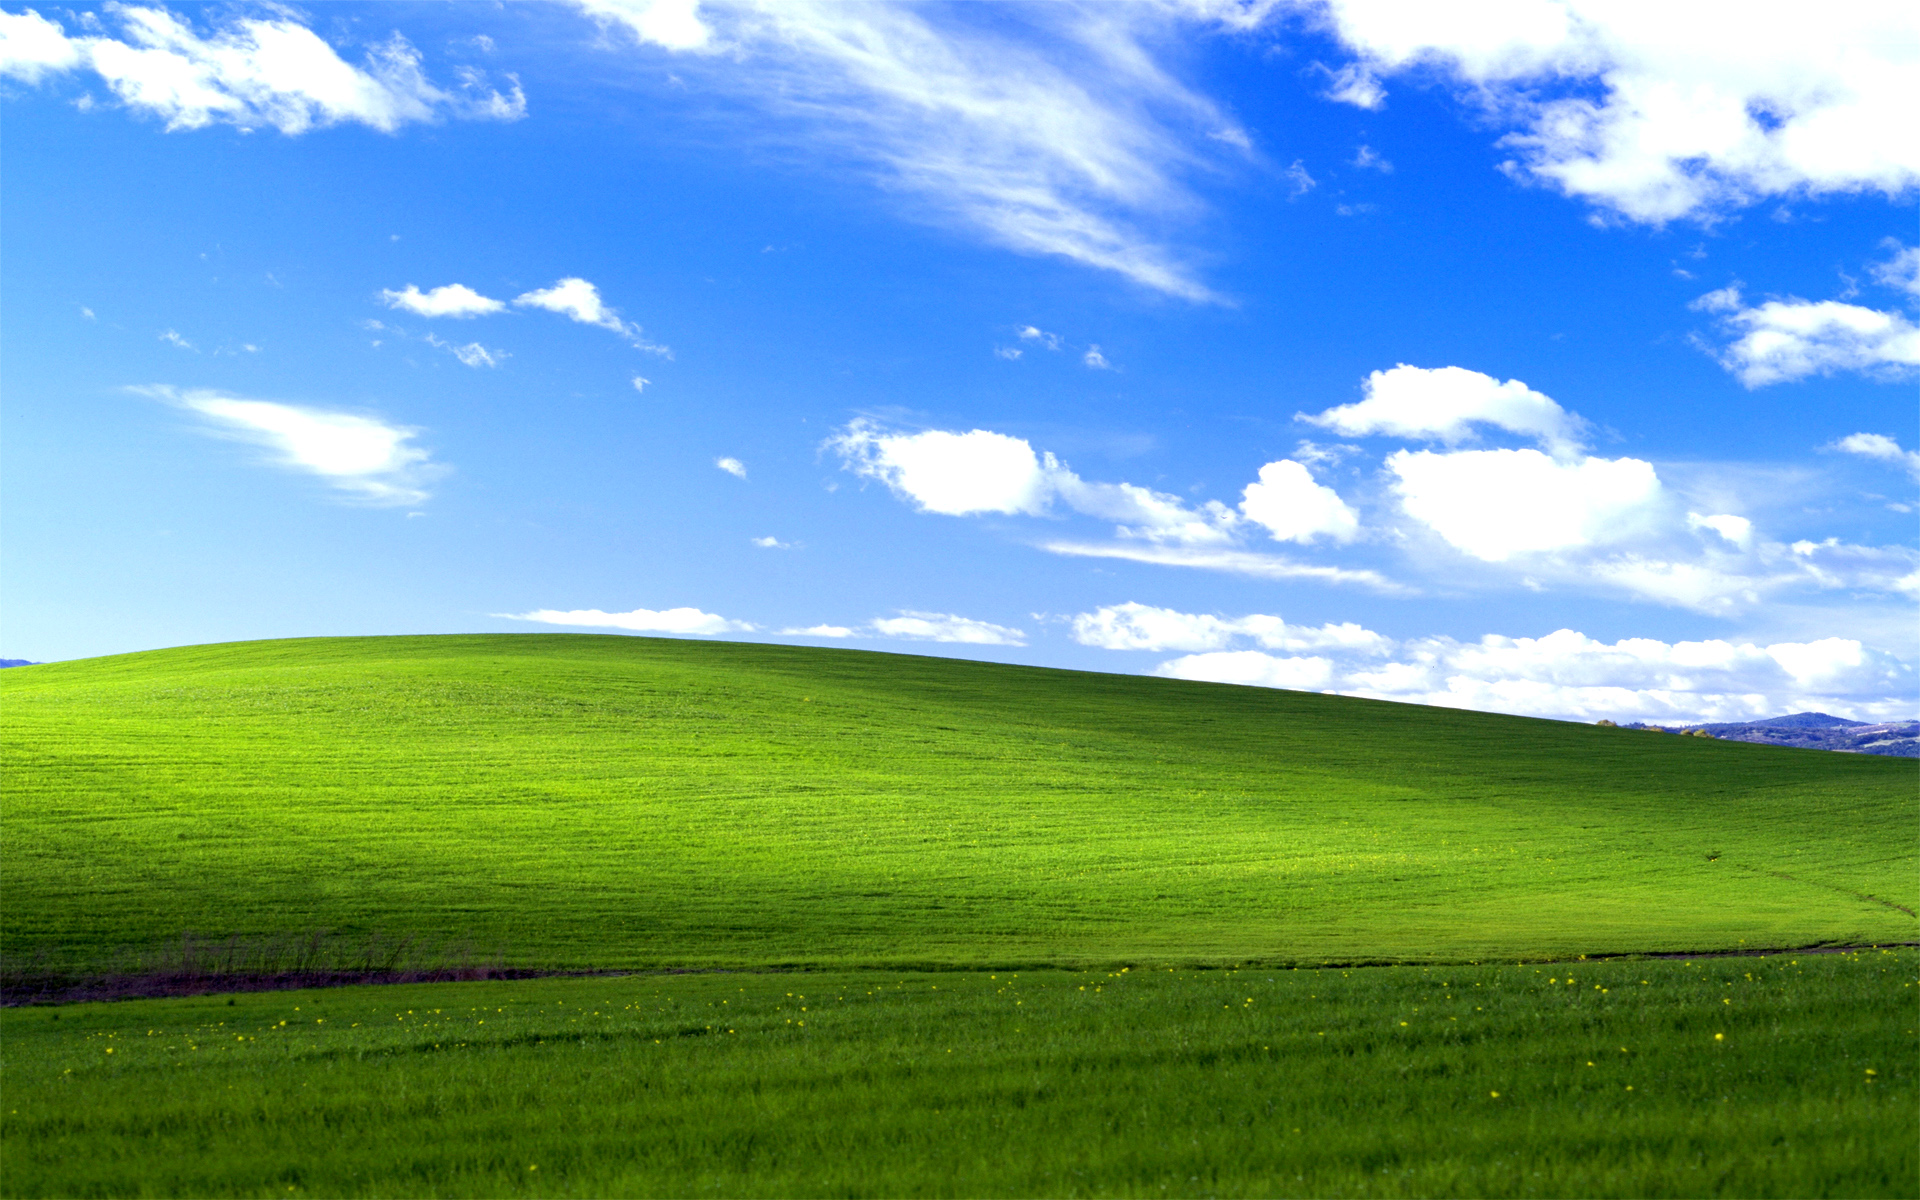 Windows Wallpaper Background Pack